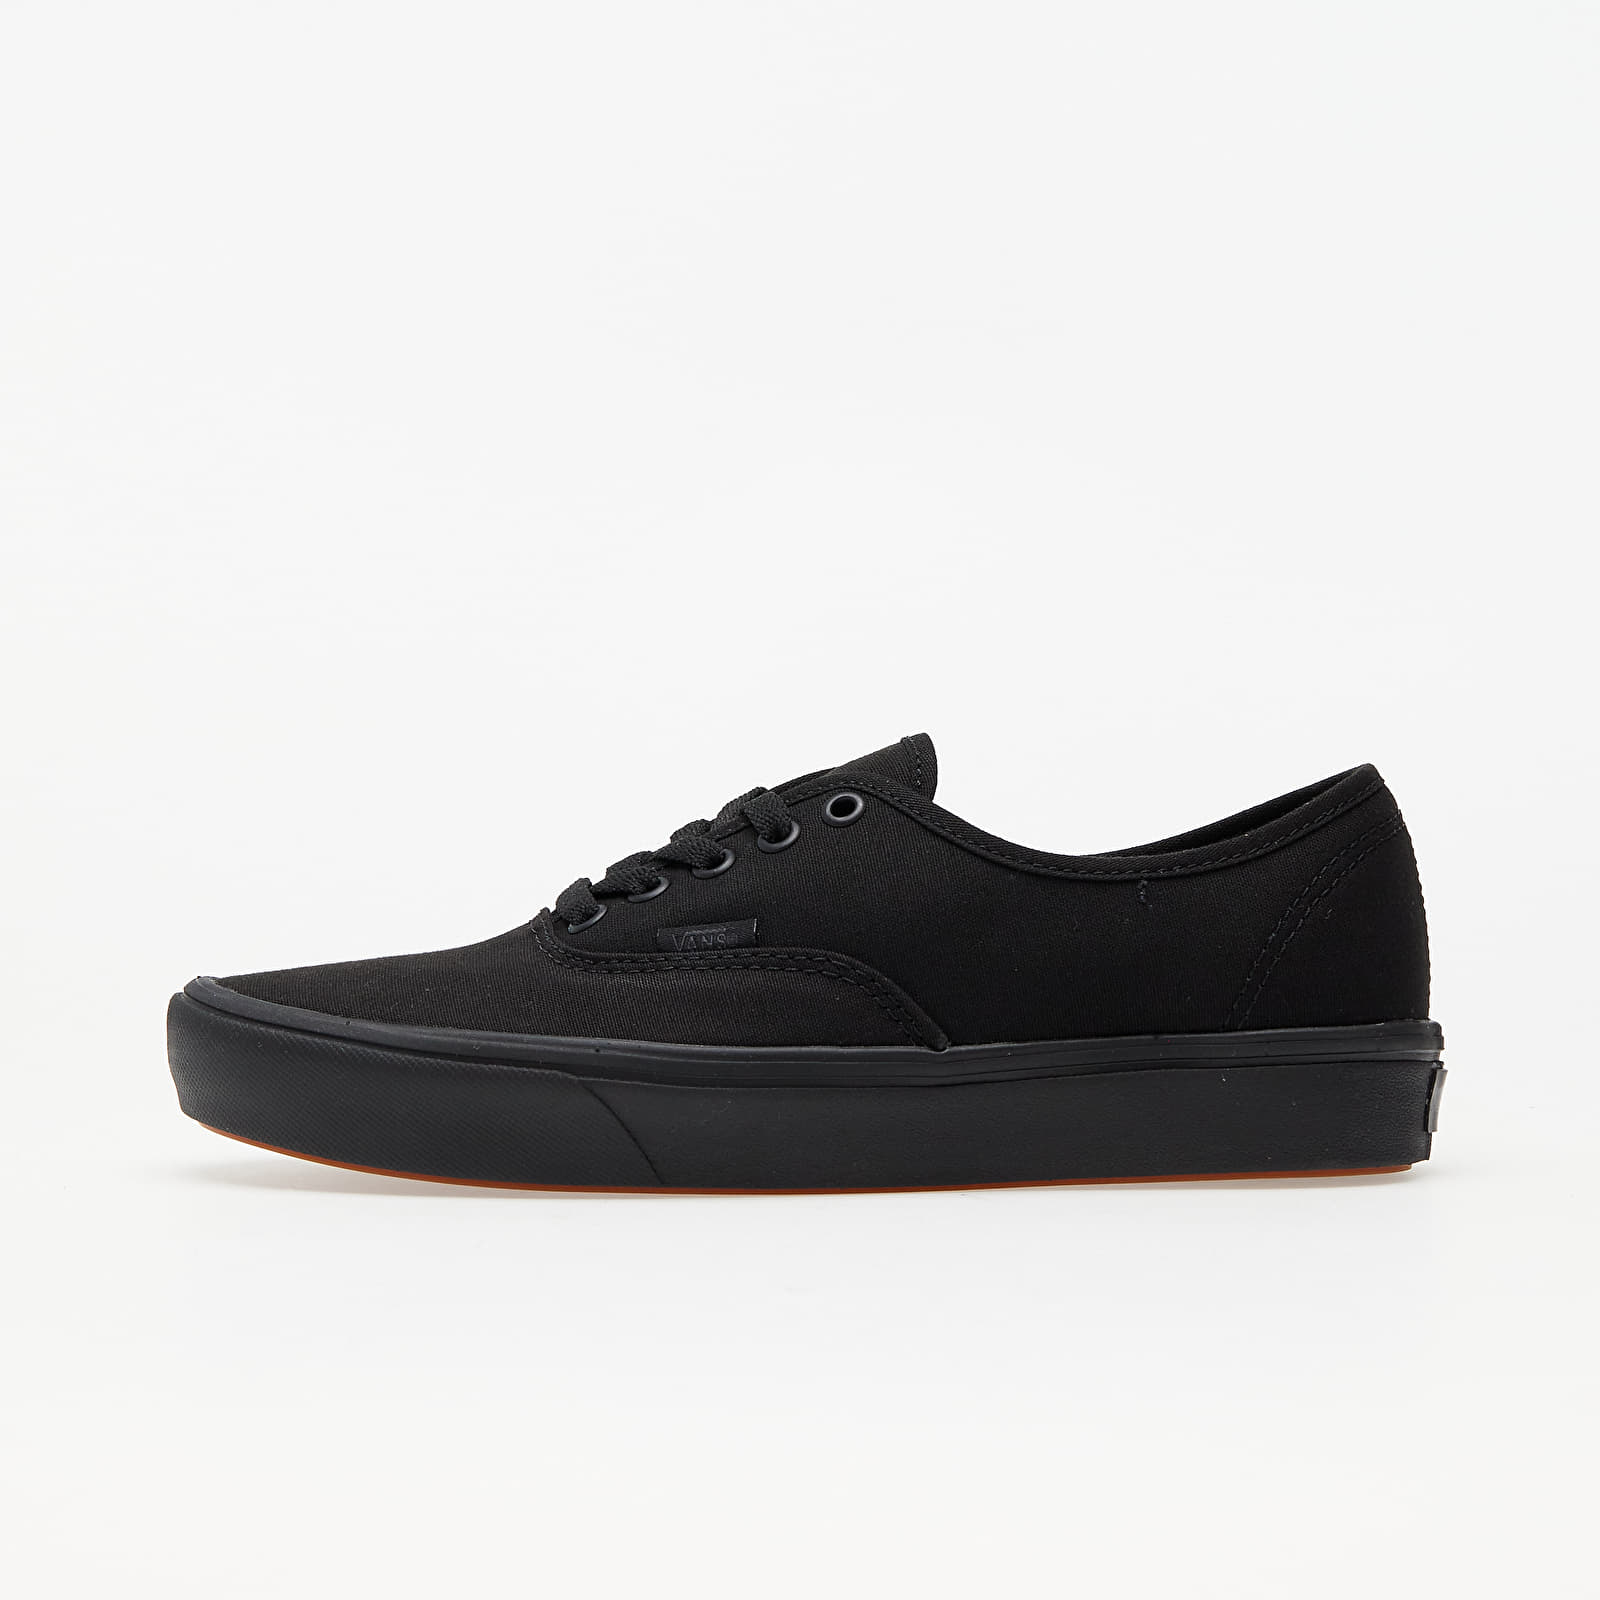 Vans ComfyCush Authentic (Classic) Black/ Black EUR 42.5